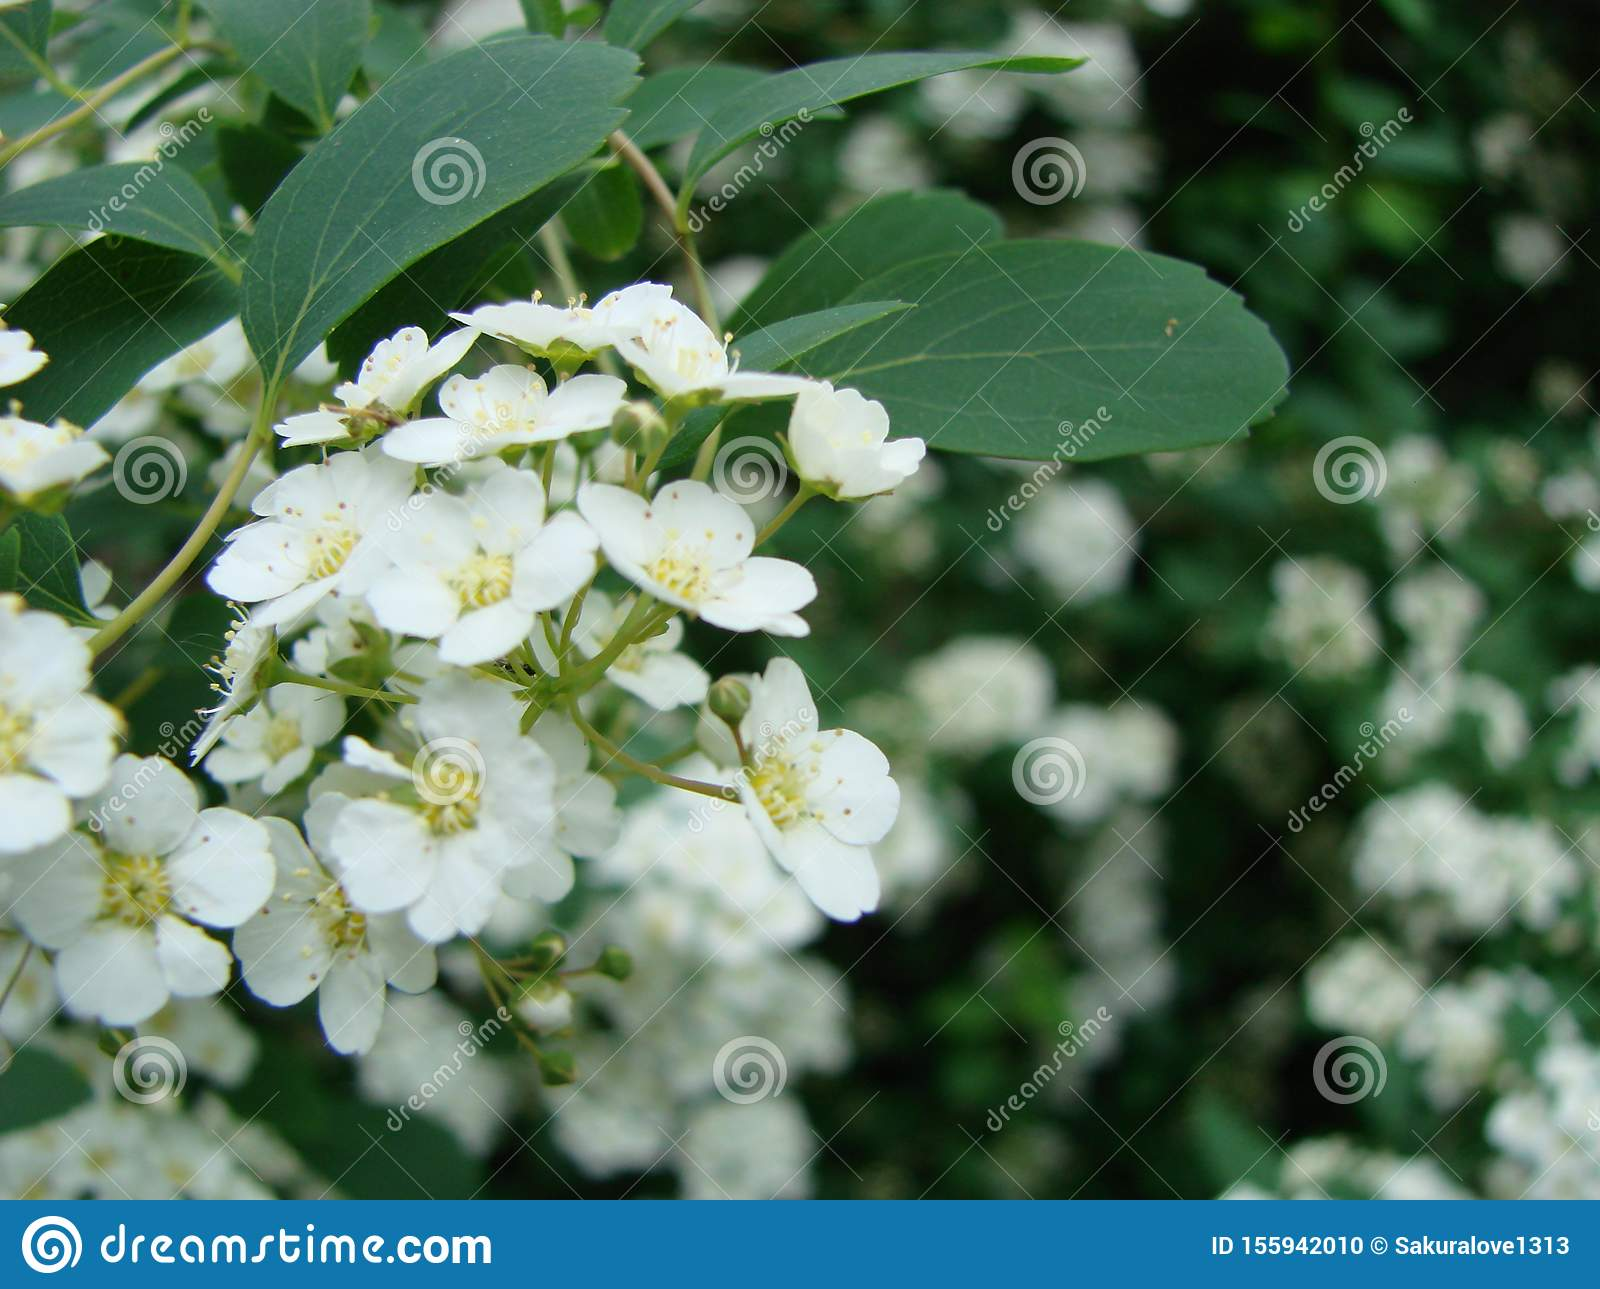 Small, white flowers in sumptuous clusters along leafy Spirea shrub branches